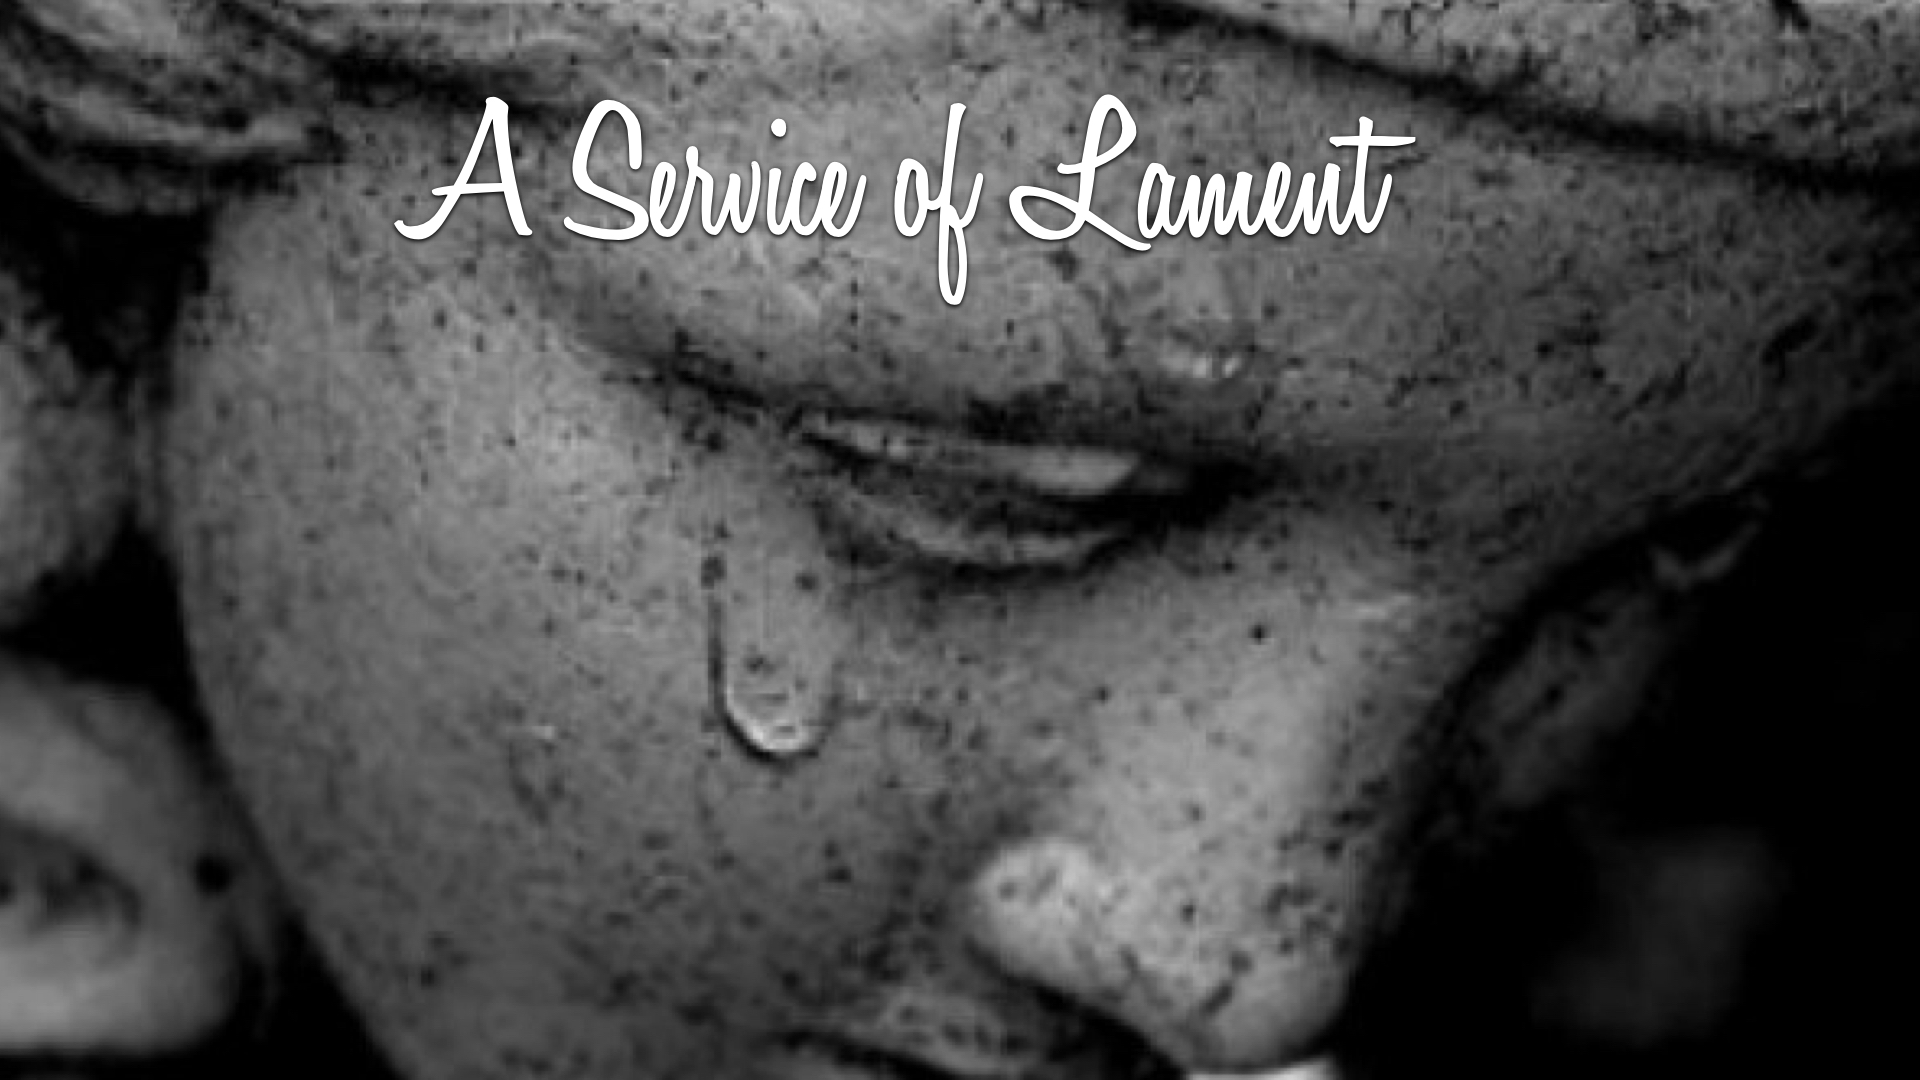 10.08.17 - A Service of Lament